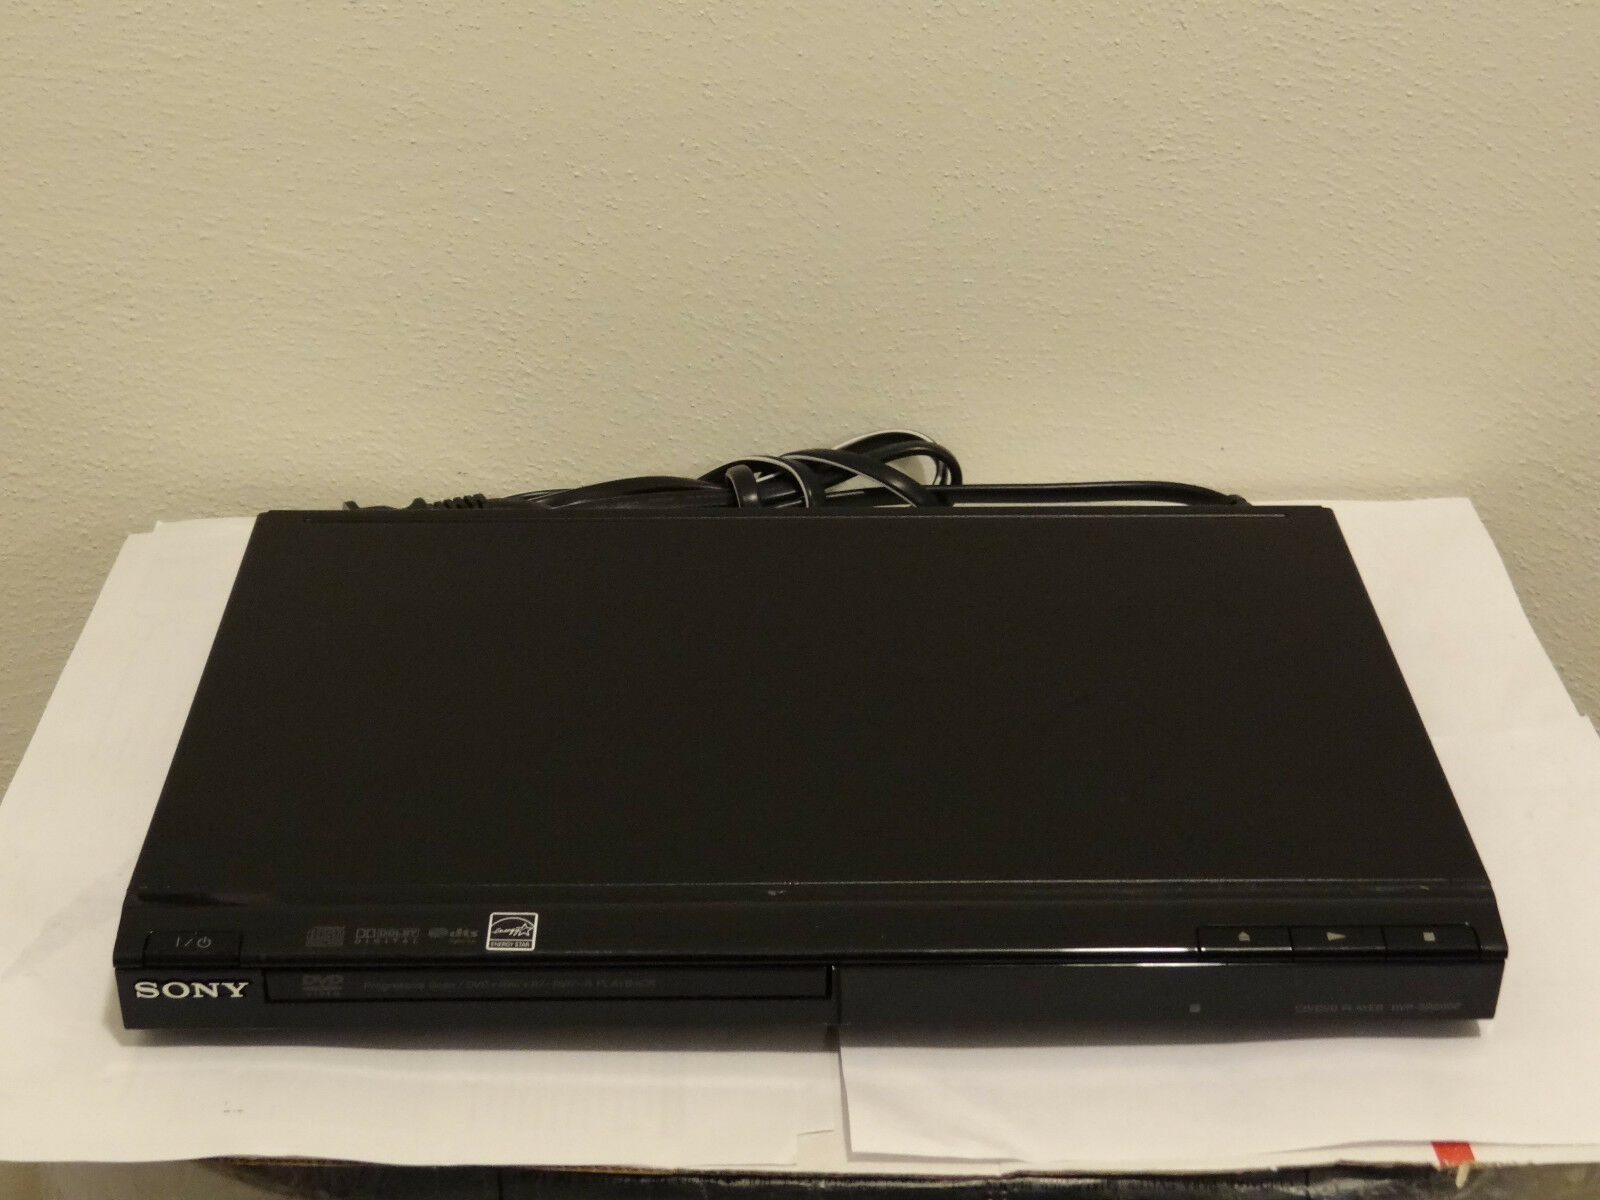 Sony DVP-SR200P Progressive Scan CD/DVD Player w/ A/V Cables 1 of 5Only 1  available ...